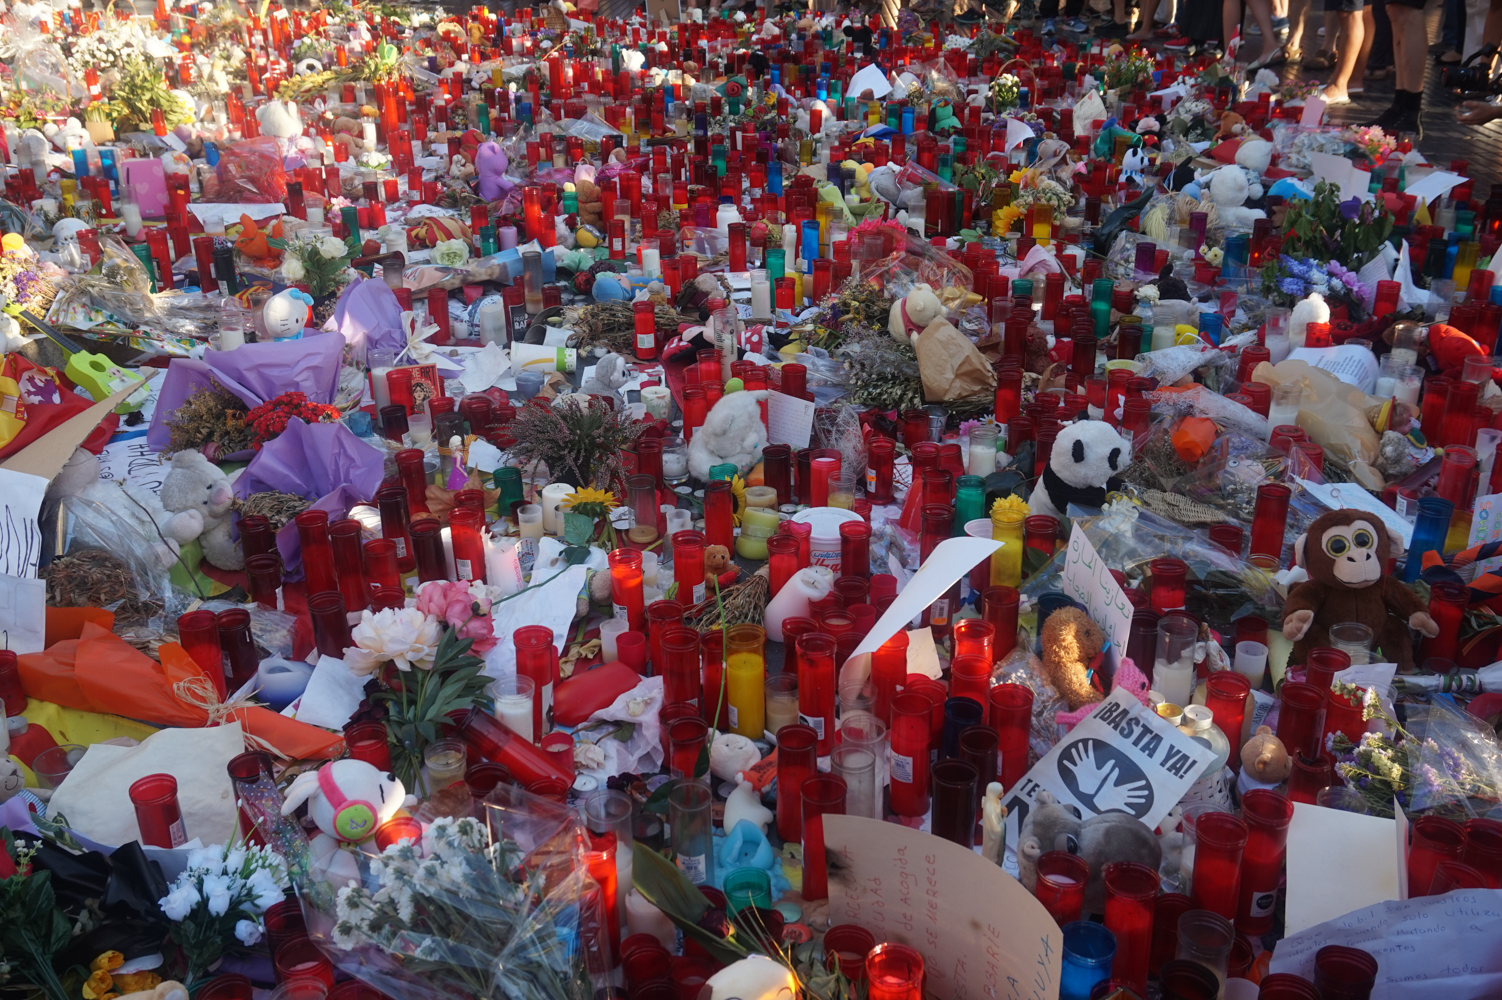 Not there anymore. A memorial for the Barcelona terrorist attacks last month.